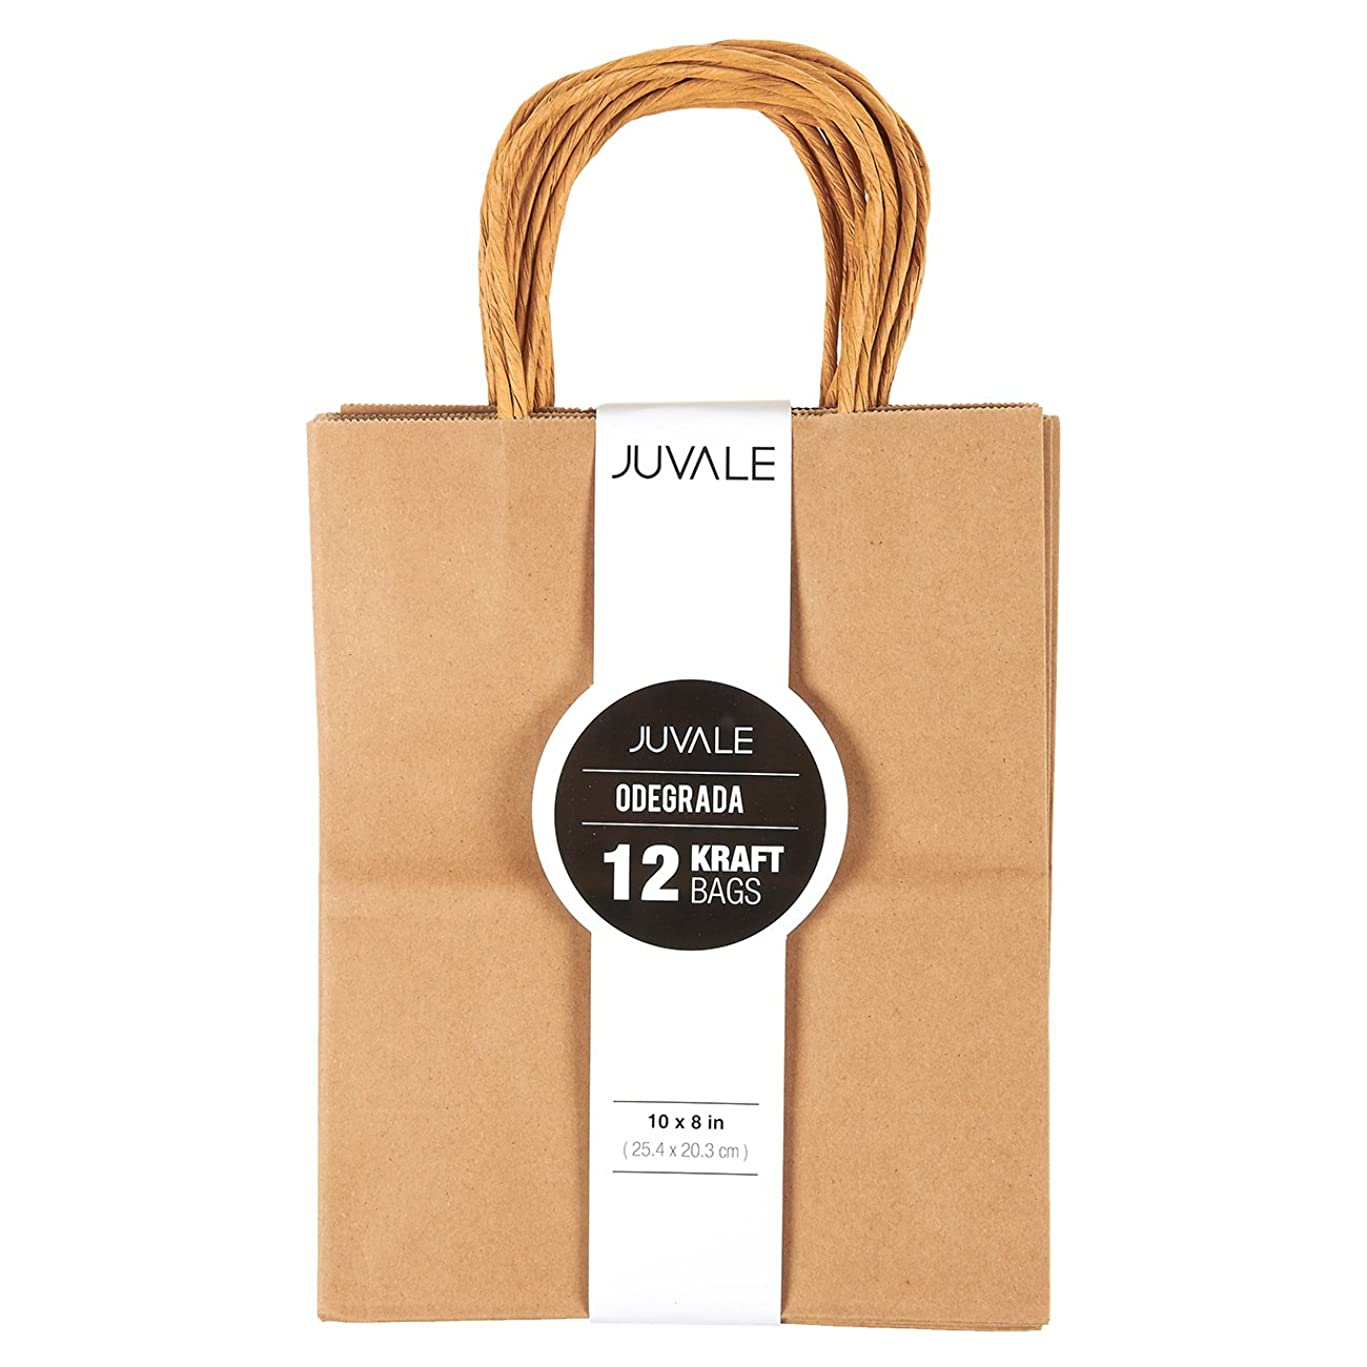 12-Count Brown Kraft Bags - Paper Bags with Handles, Great as Wedding Favor Bags, Shower Favor Bags, Bridal Party Gift Bags, Medium, 8 x 10 x 4.5 Inches